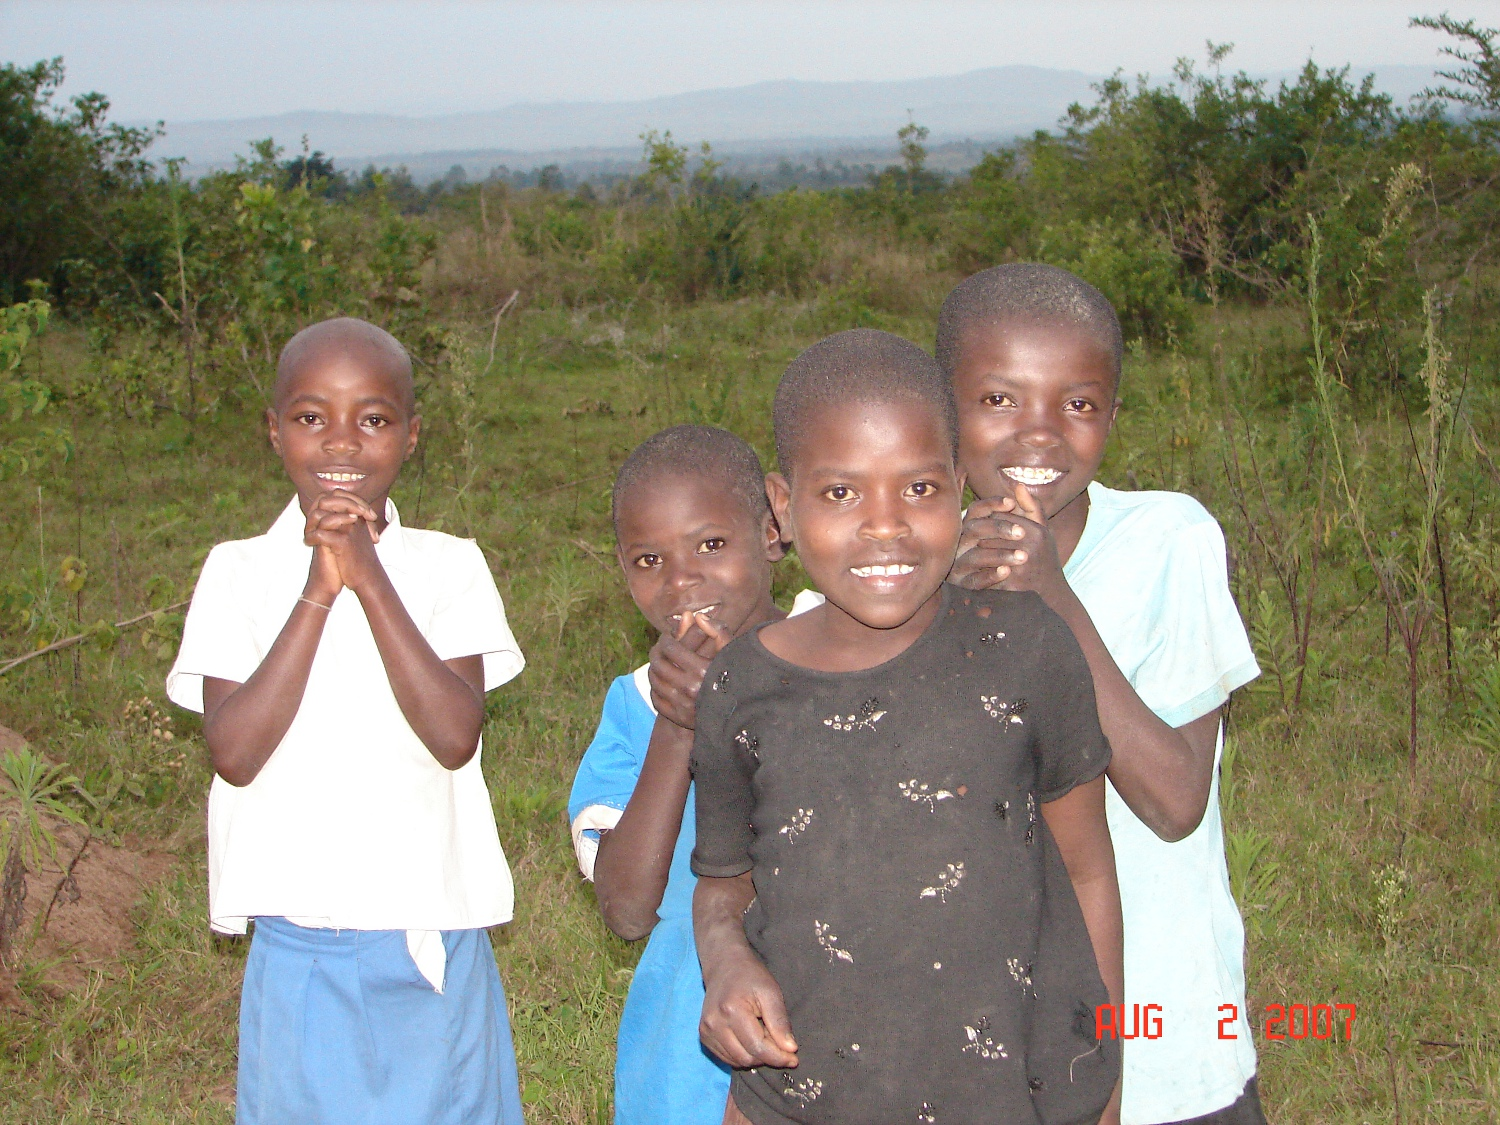 Big Smiles From Appreciative Orphans